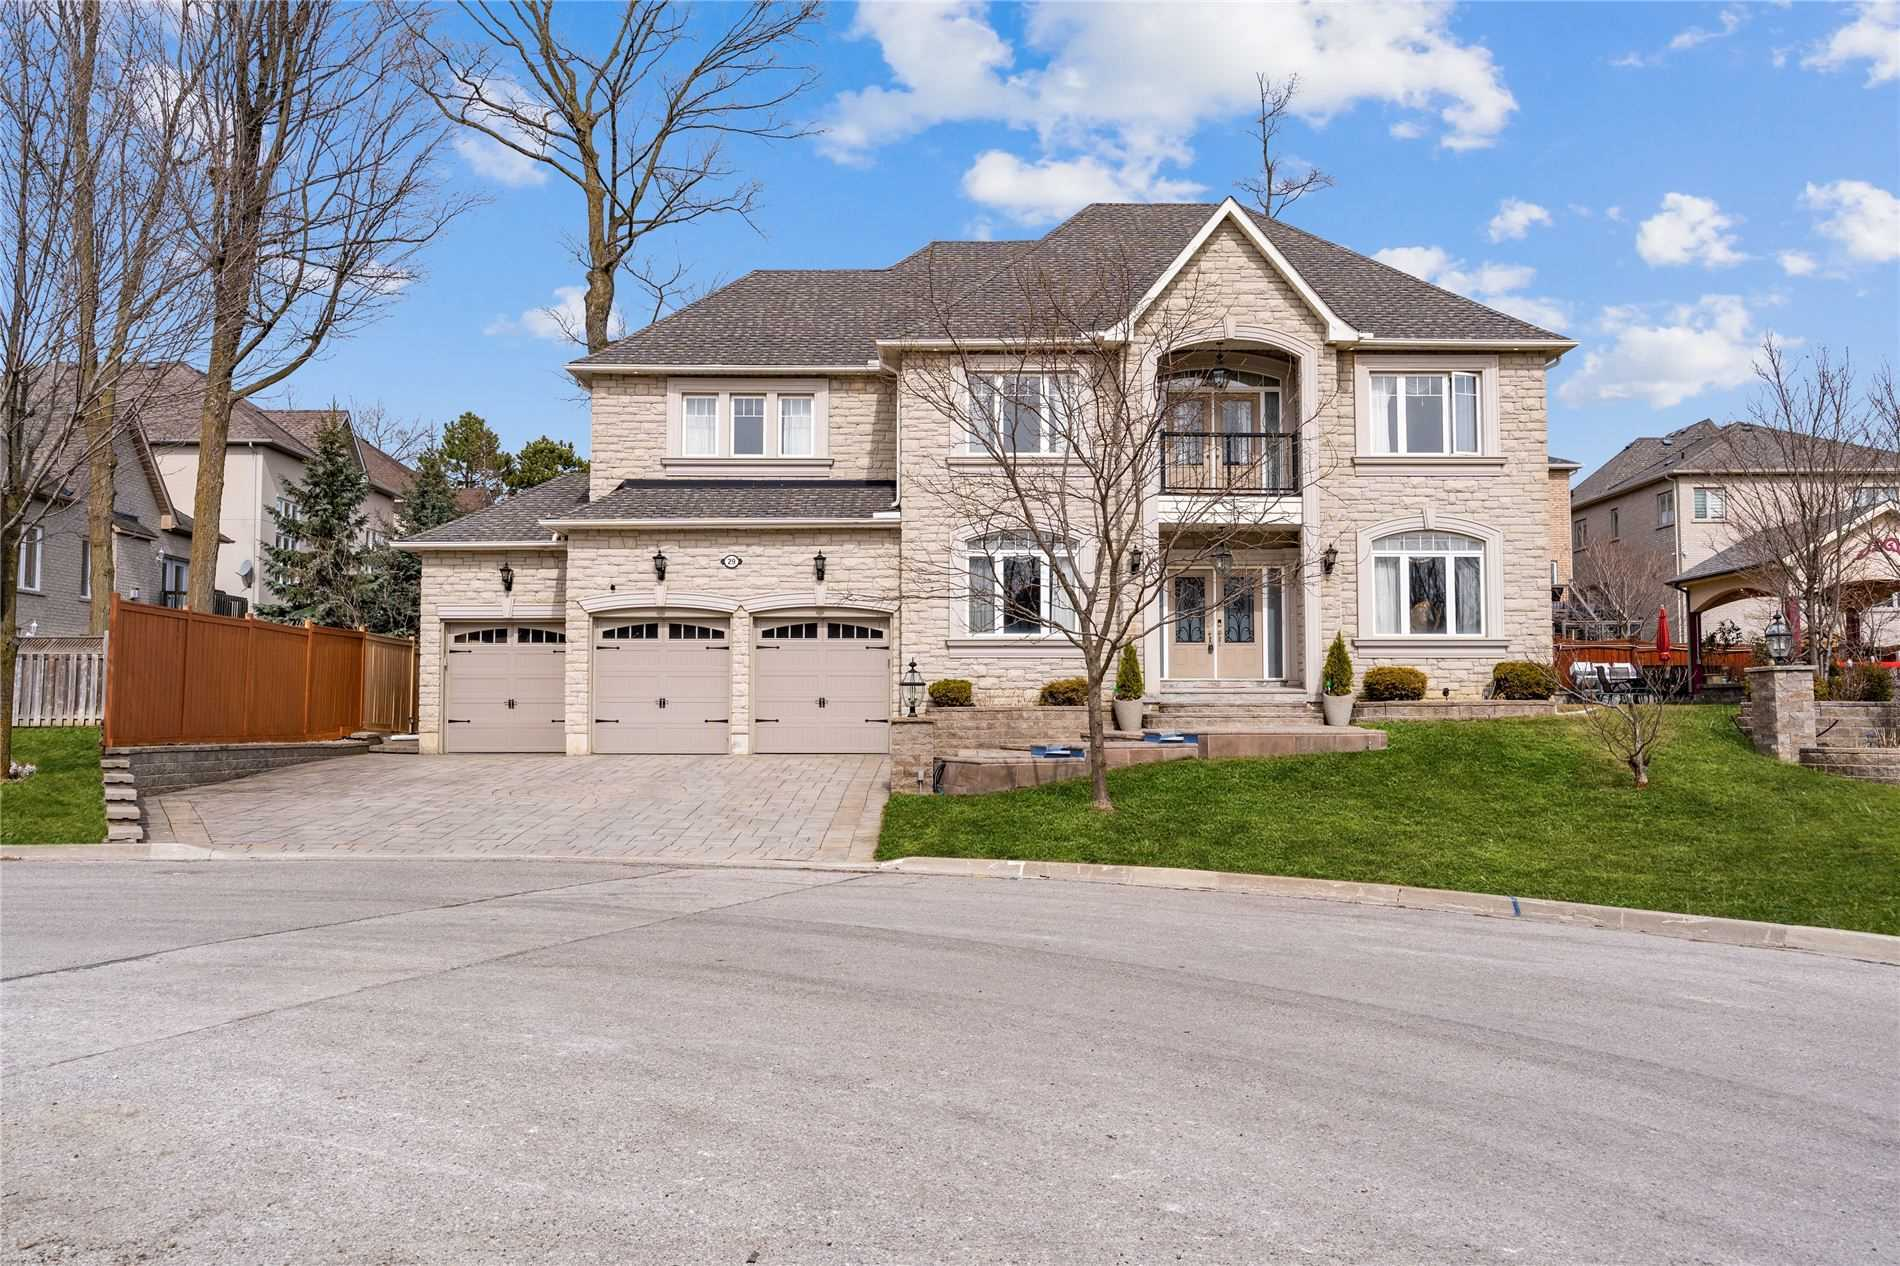 Spectacular Custom-Built Unionville Estate Featuring Over 7,500 S/F Of Living Space W/No Expense Spared! This Stately 5 Bdrm Home Features Top Quality Craftsmanship, Classic Centre-Hall Design, Large Master Bdrm W/Spa-Like Ensuite & Sitting Area, Library, Main Flr Theatre Rm, Bsmt W/Huge Rec Rm, Kitchen Area, Workout Rm & Additional Bdrm, Sunroom W/Hot Tub, Gorgeous Backyard Oasis! Truly An Entertainer's Delight - Must Be Seen!!!